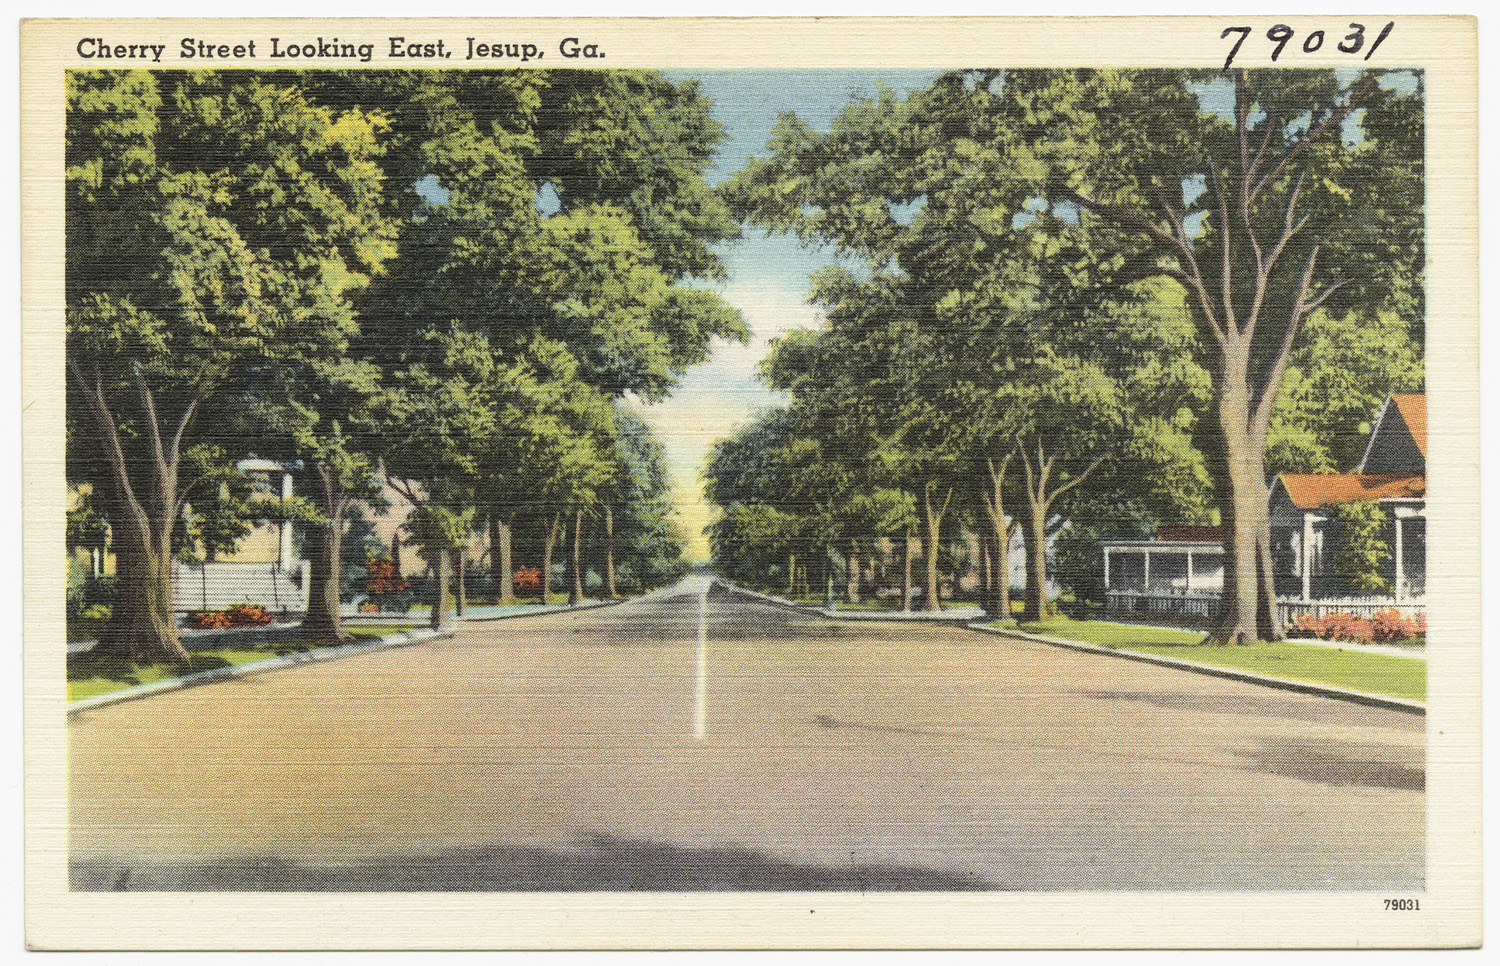 jesup online dating About us the jesup is a  free access to digitized local newspapers dating from 1881  or internet-enabled device within the jesup free online access to many .